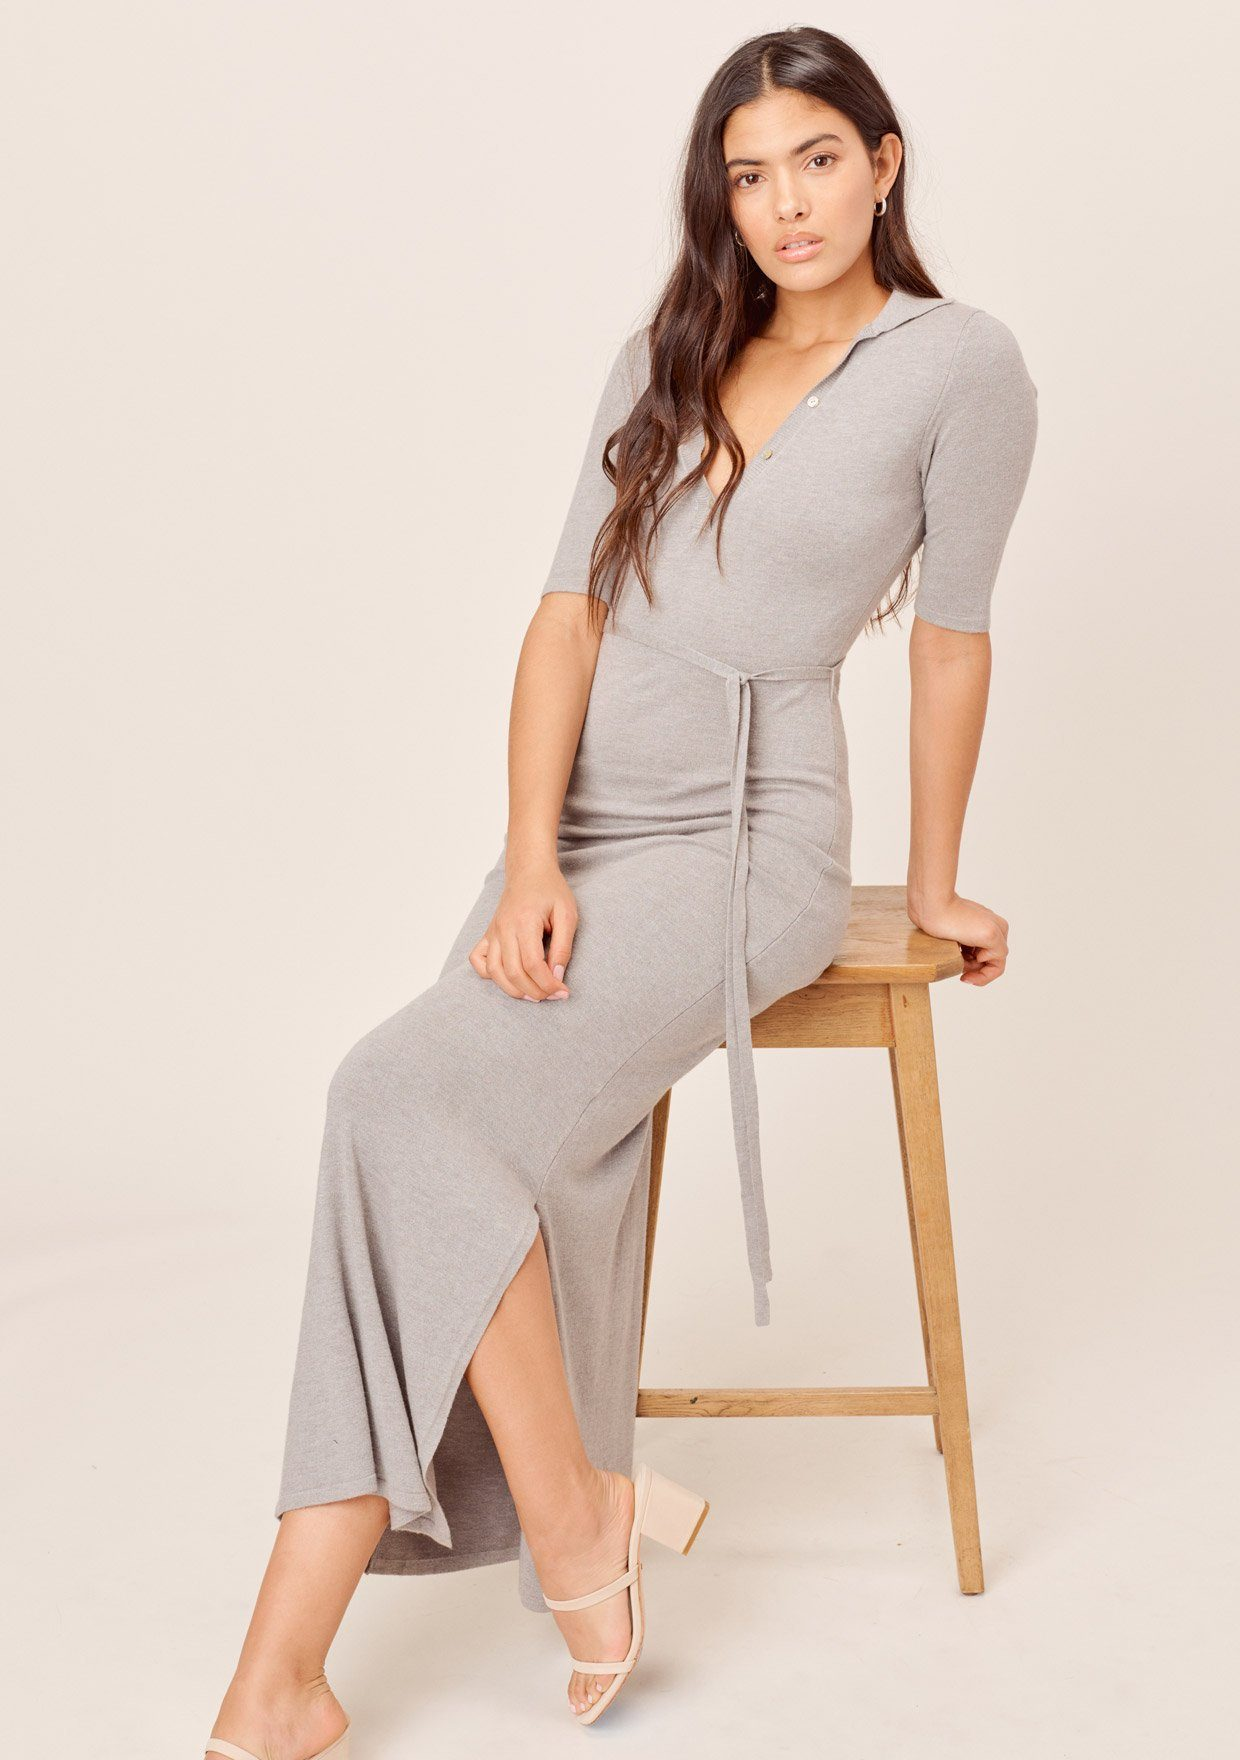 [Color: Grey] Grey maxi dress, fitted and knit with a v-neckline